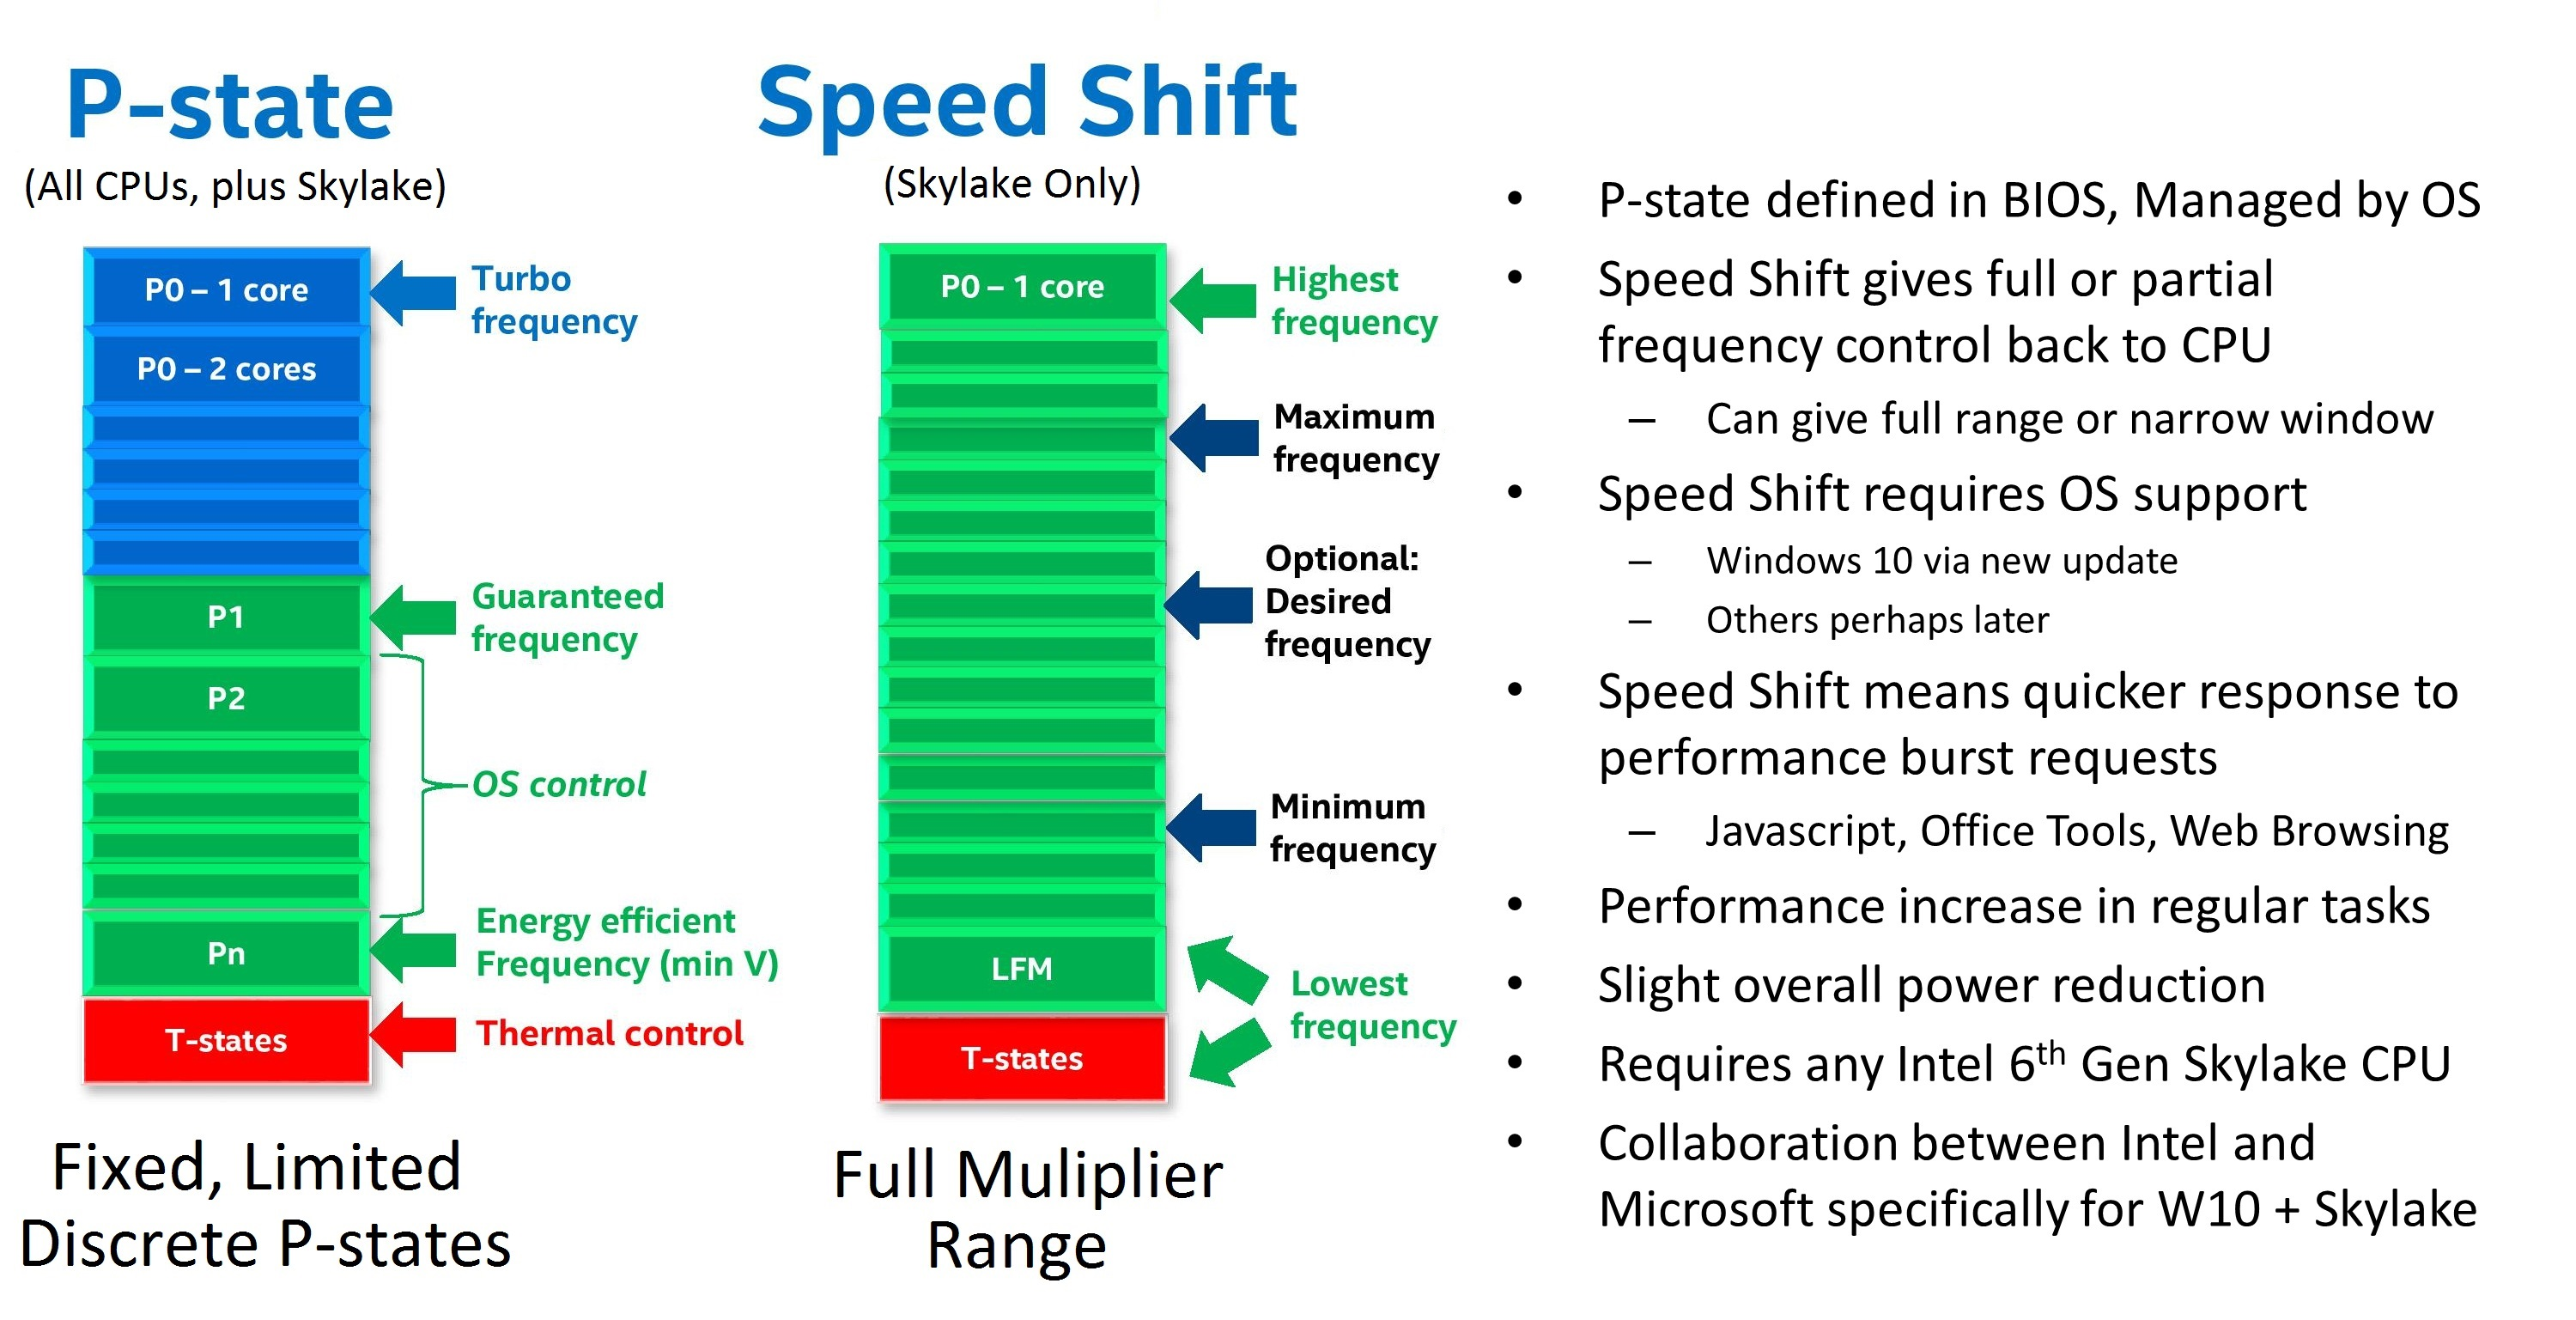 Performance Technology: Intel Introduces Speed Shift Technology For Skylake 6th